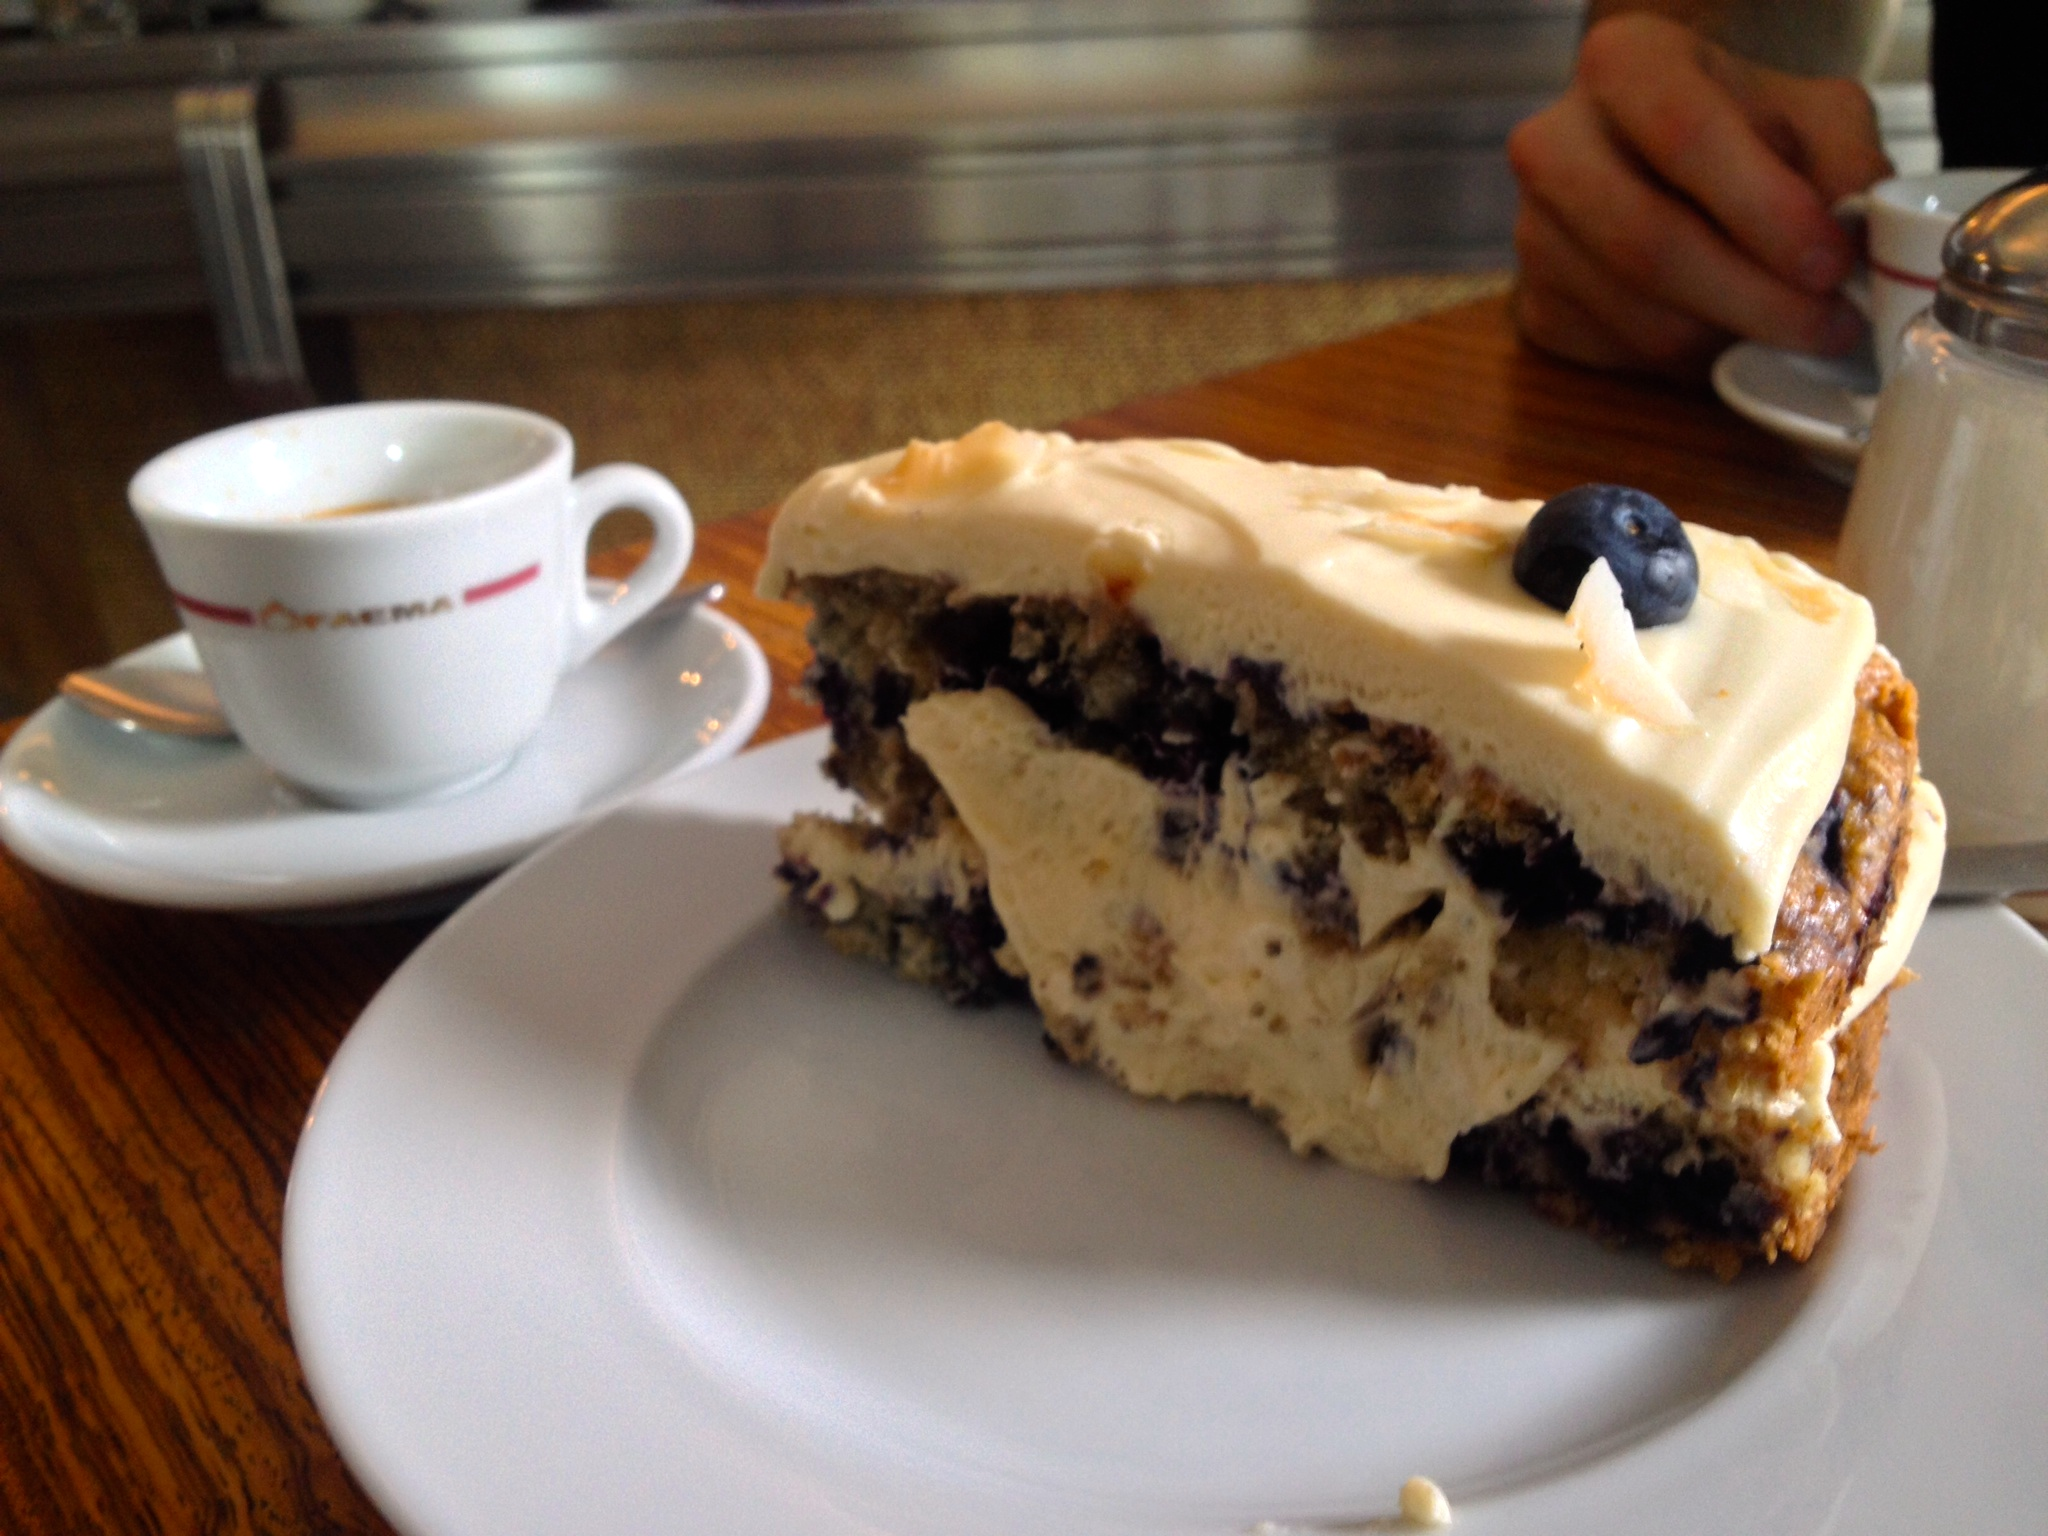 Coffee and cake from  Caffè Leidenschaft